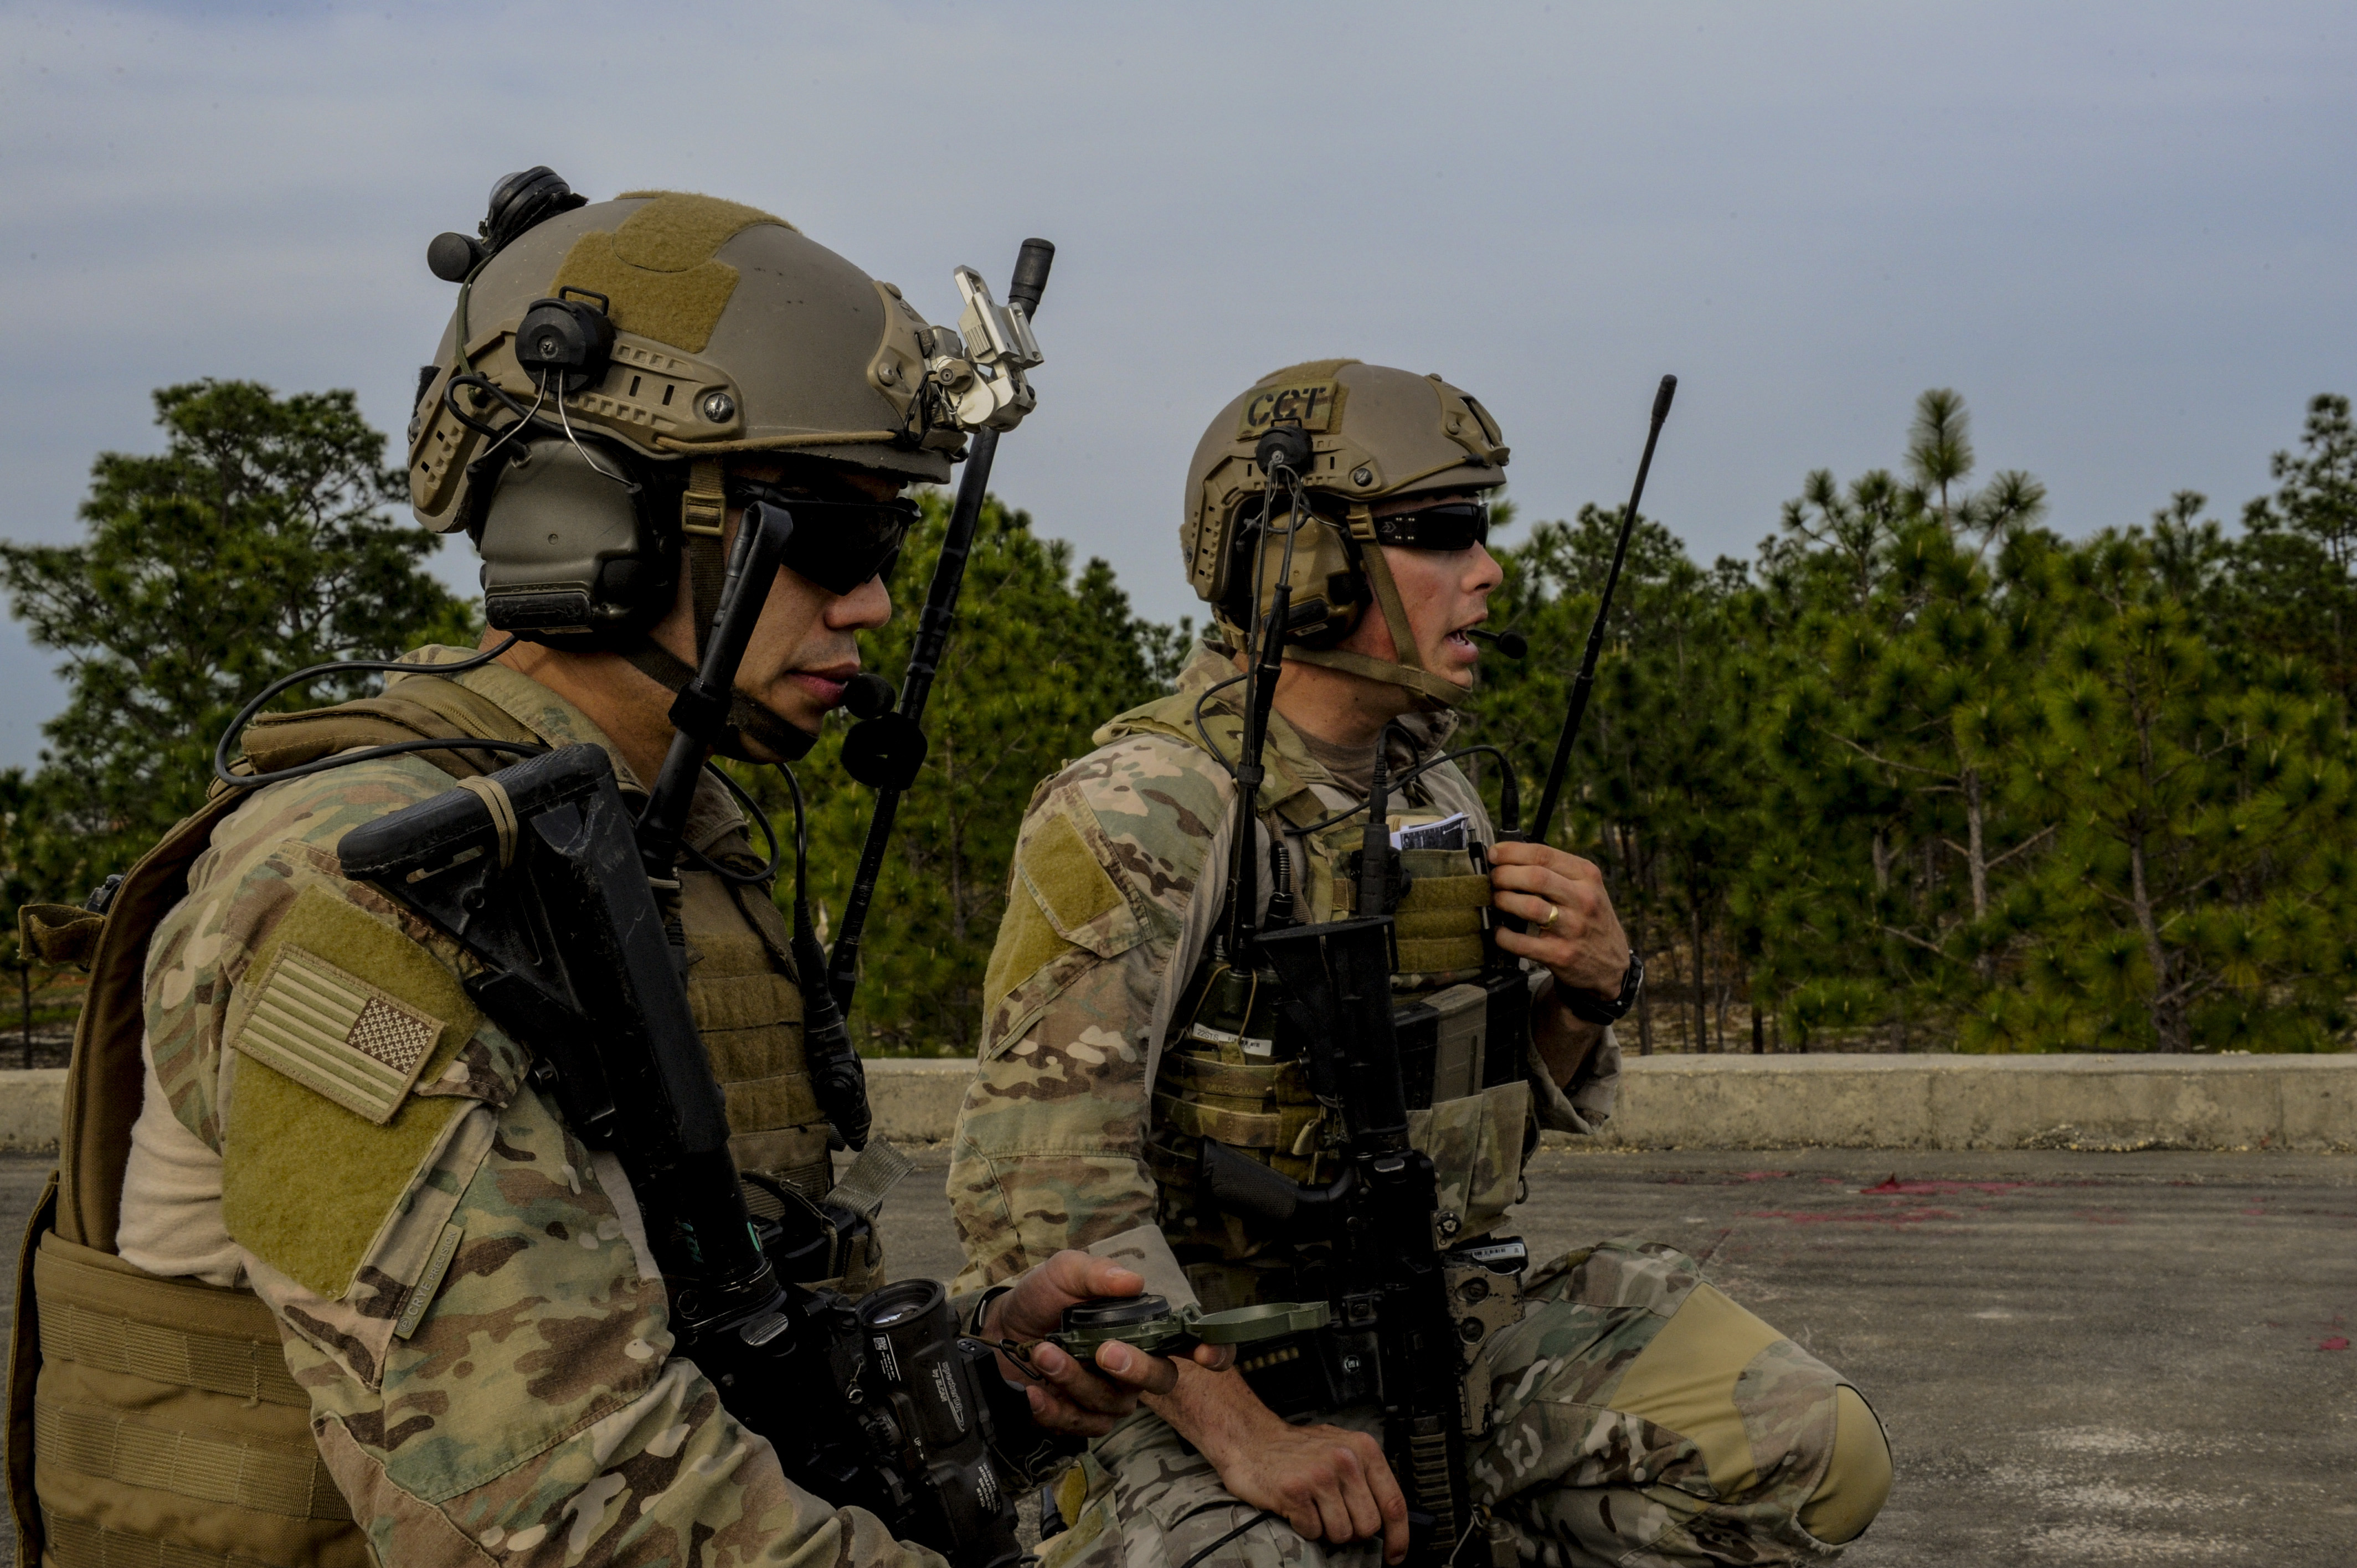 a us air force tactical air control party member left observes the compass and the area while a us air force combat controller talks on the radio for